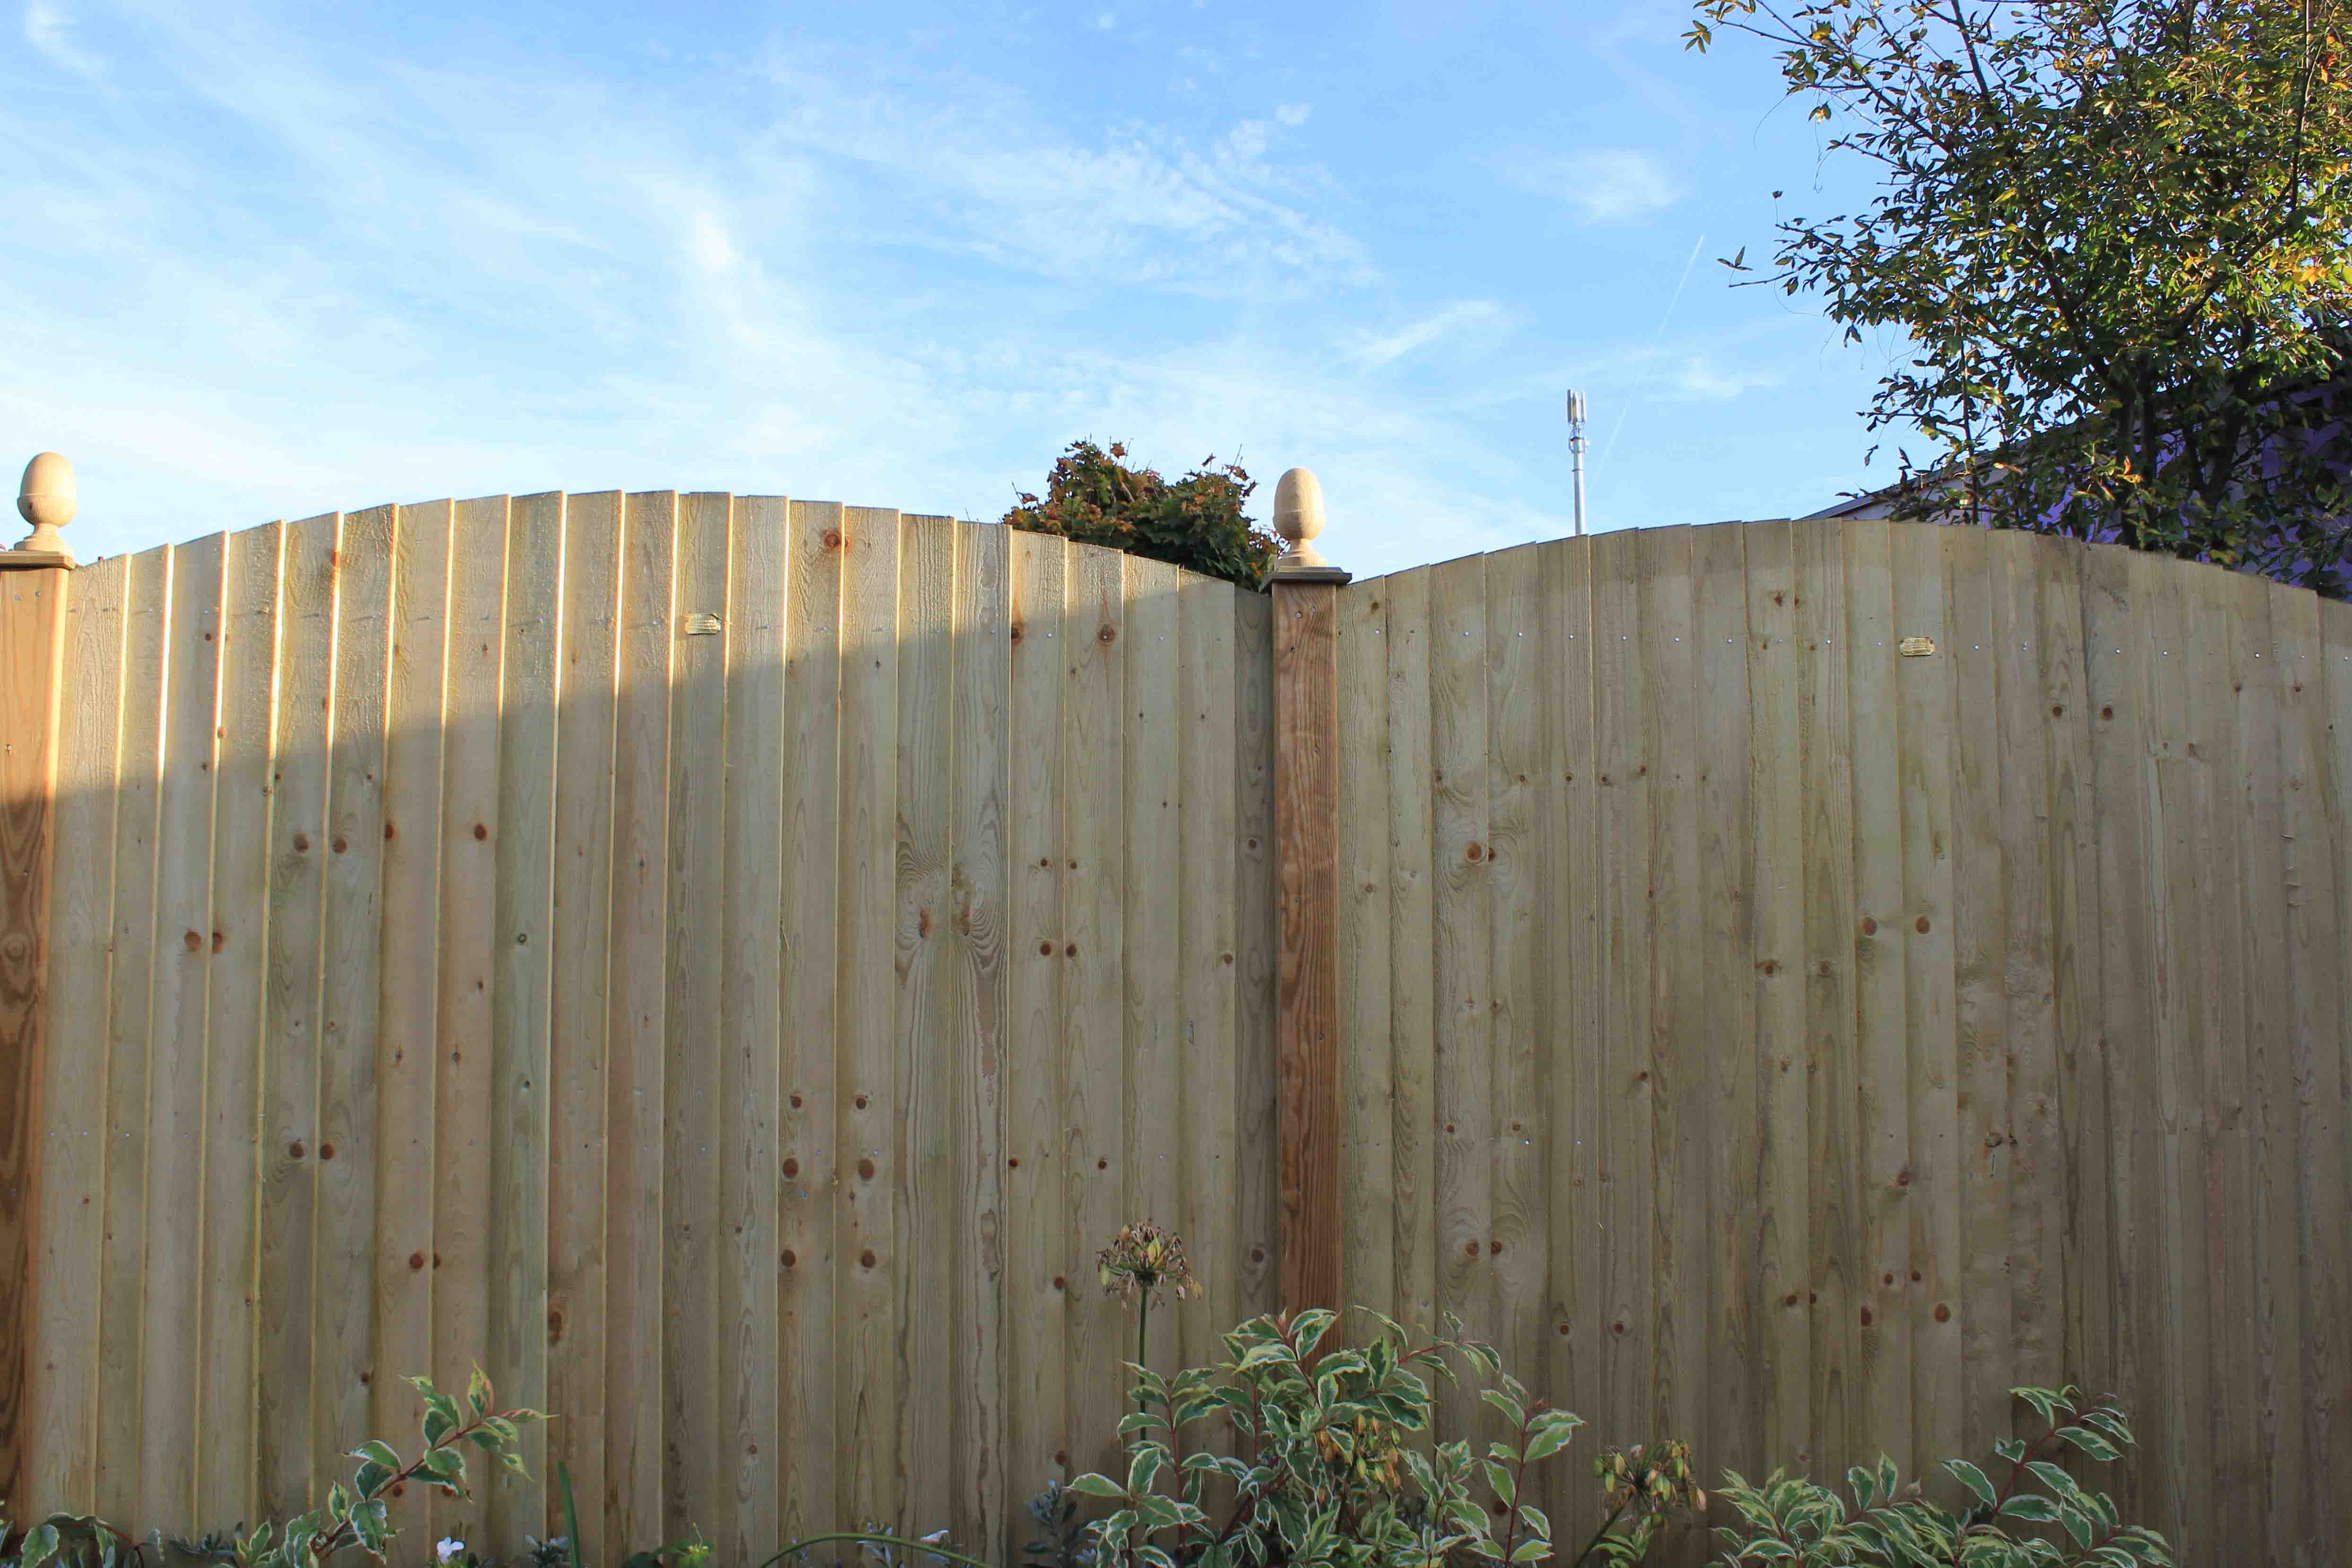 Featherboard fence panels